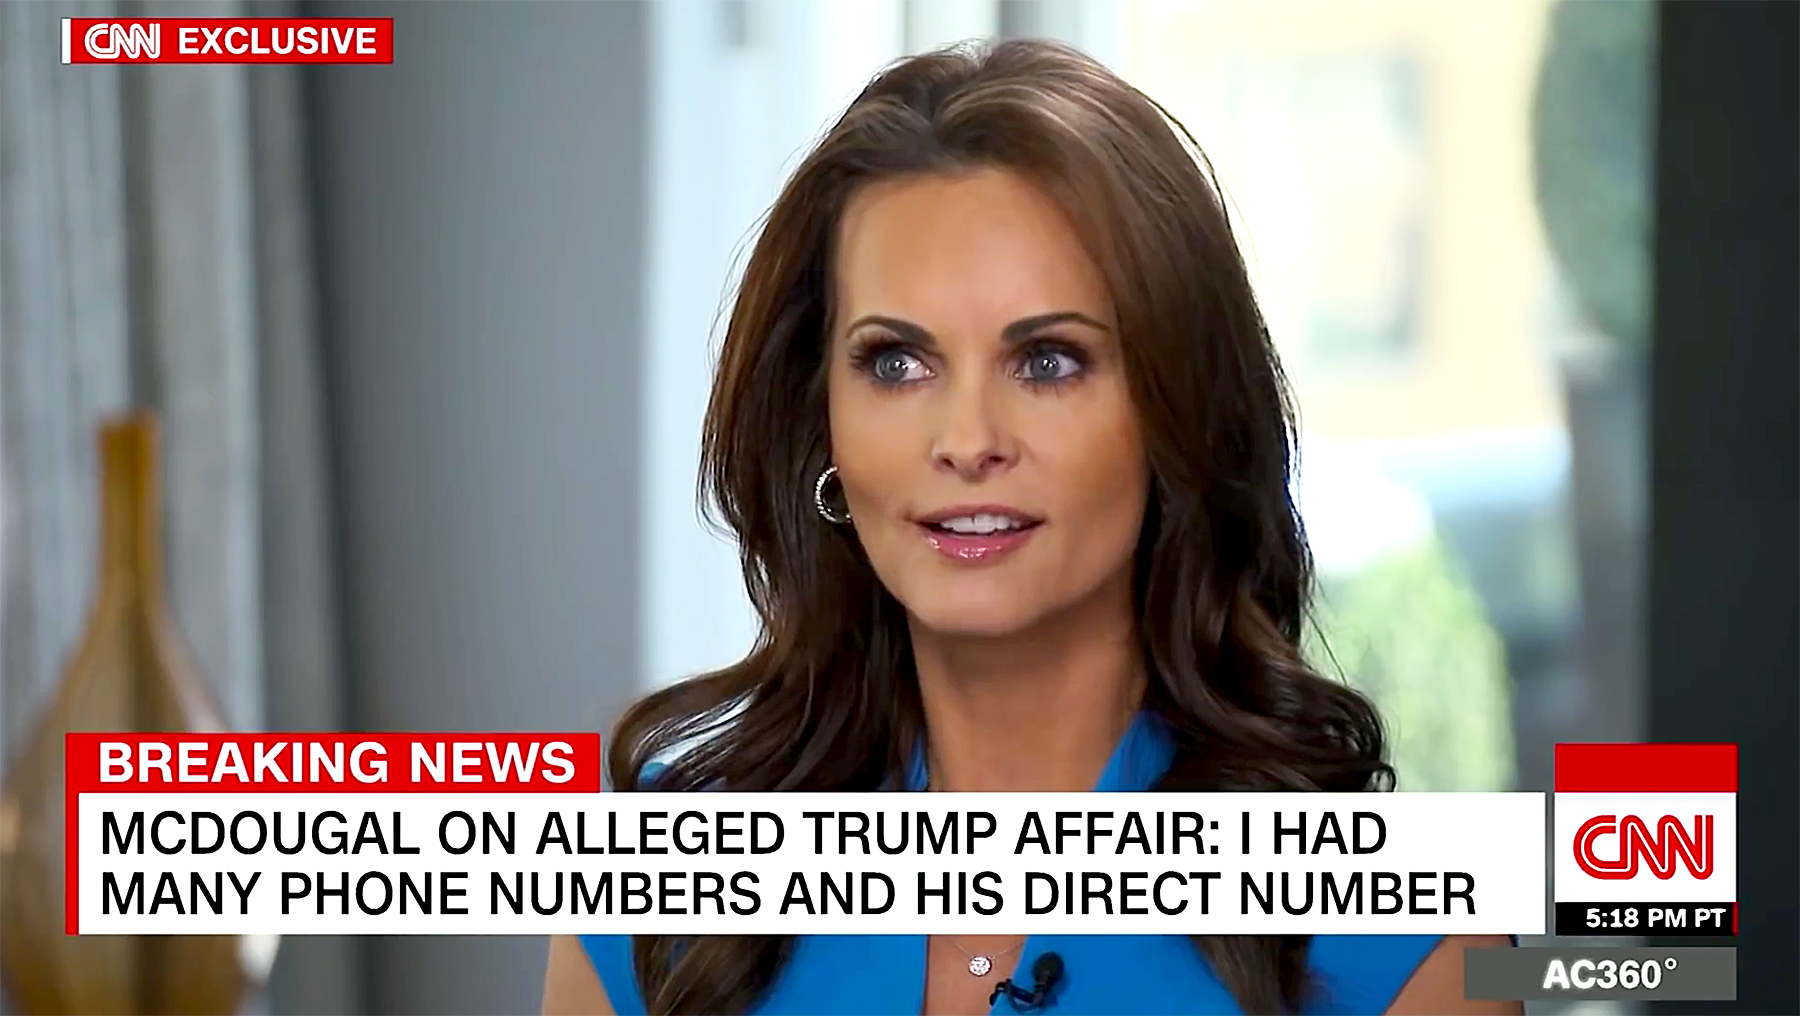 Ex-Playboy model gives emotional account of alleged affair with Donald Trump